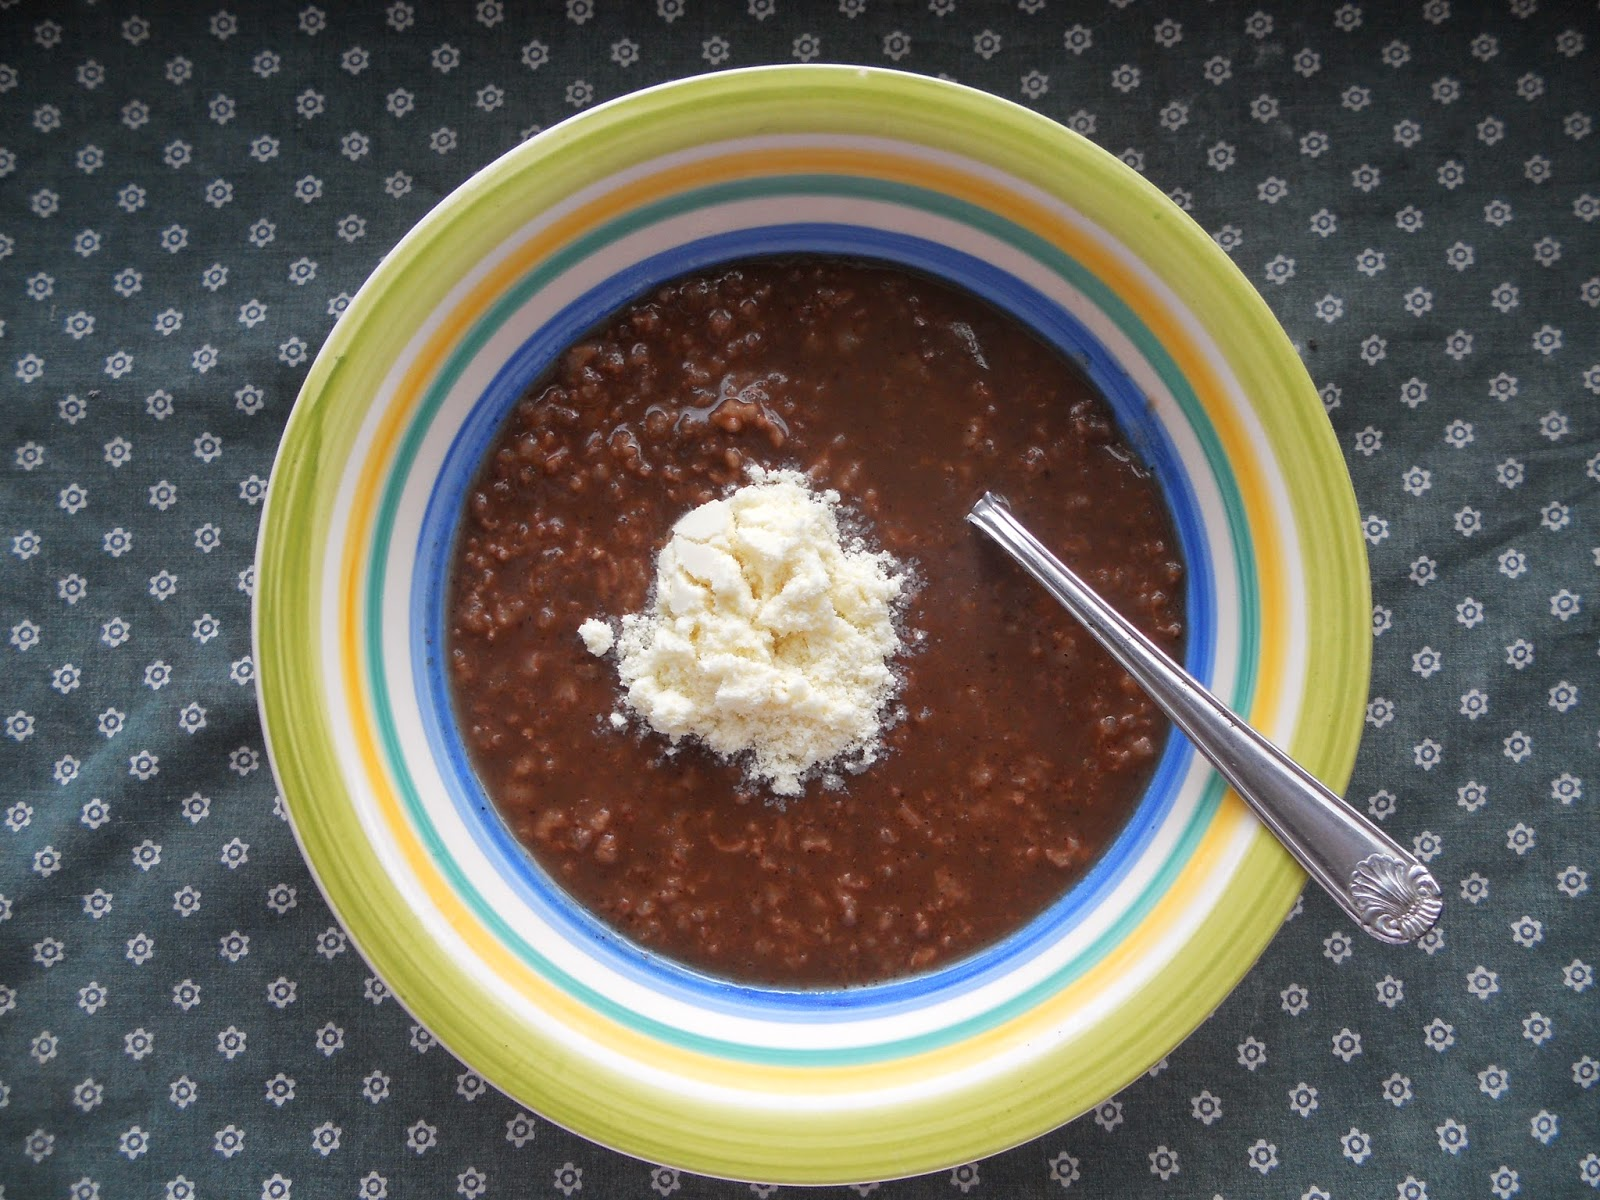 Filipino Rice-Chocolate Porridge or Champorado